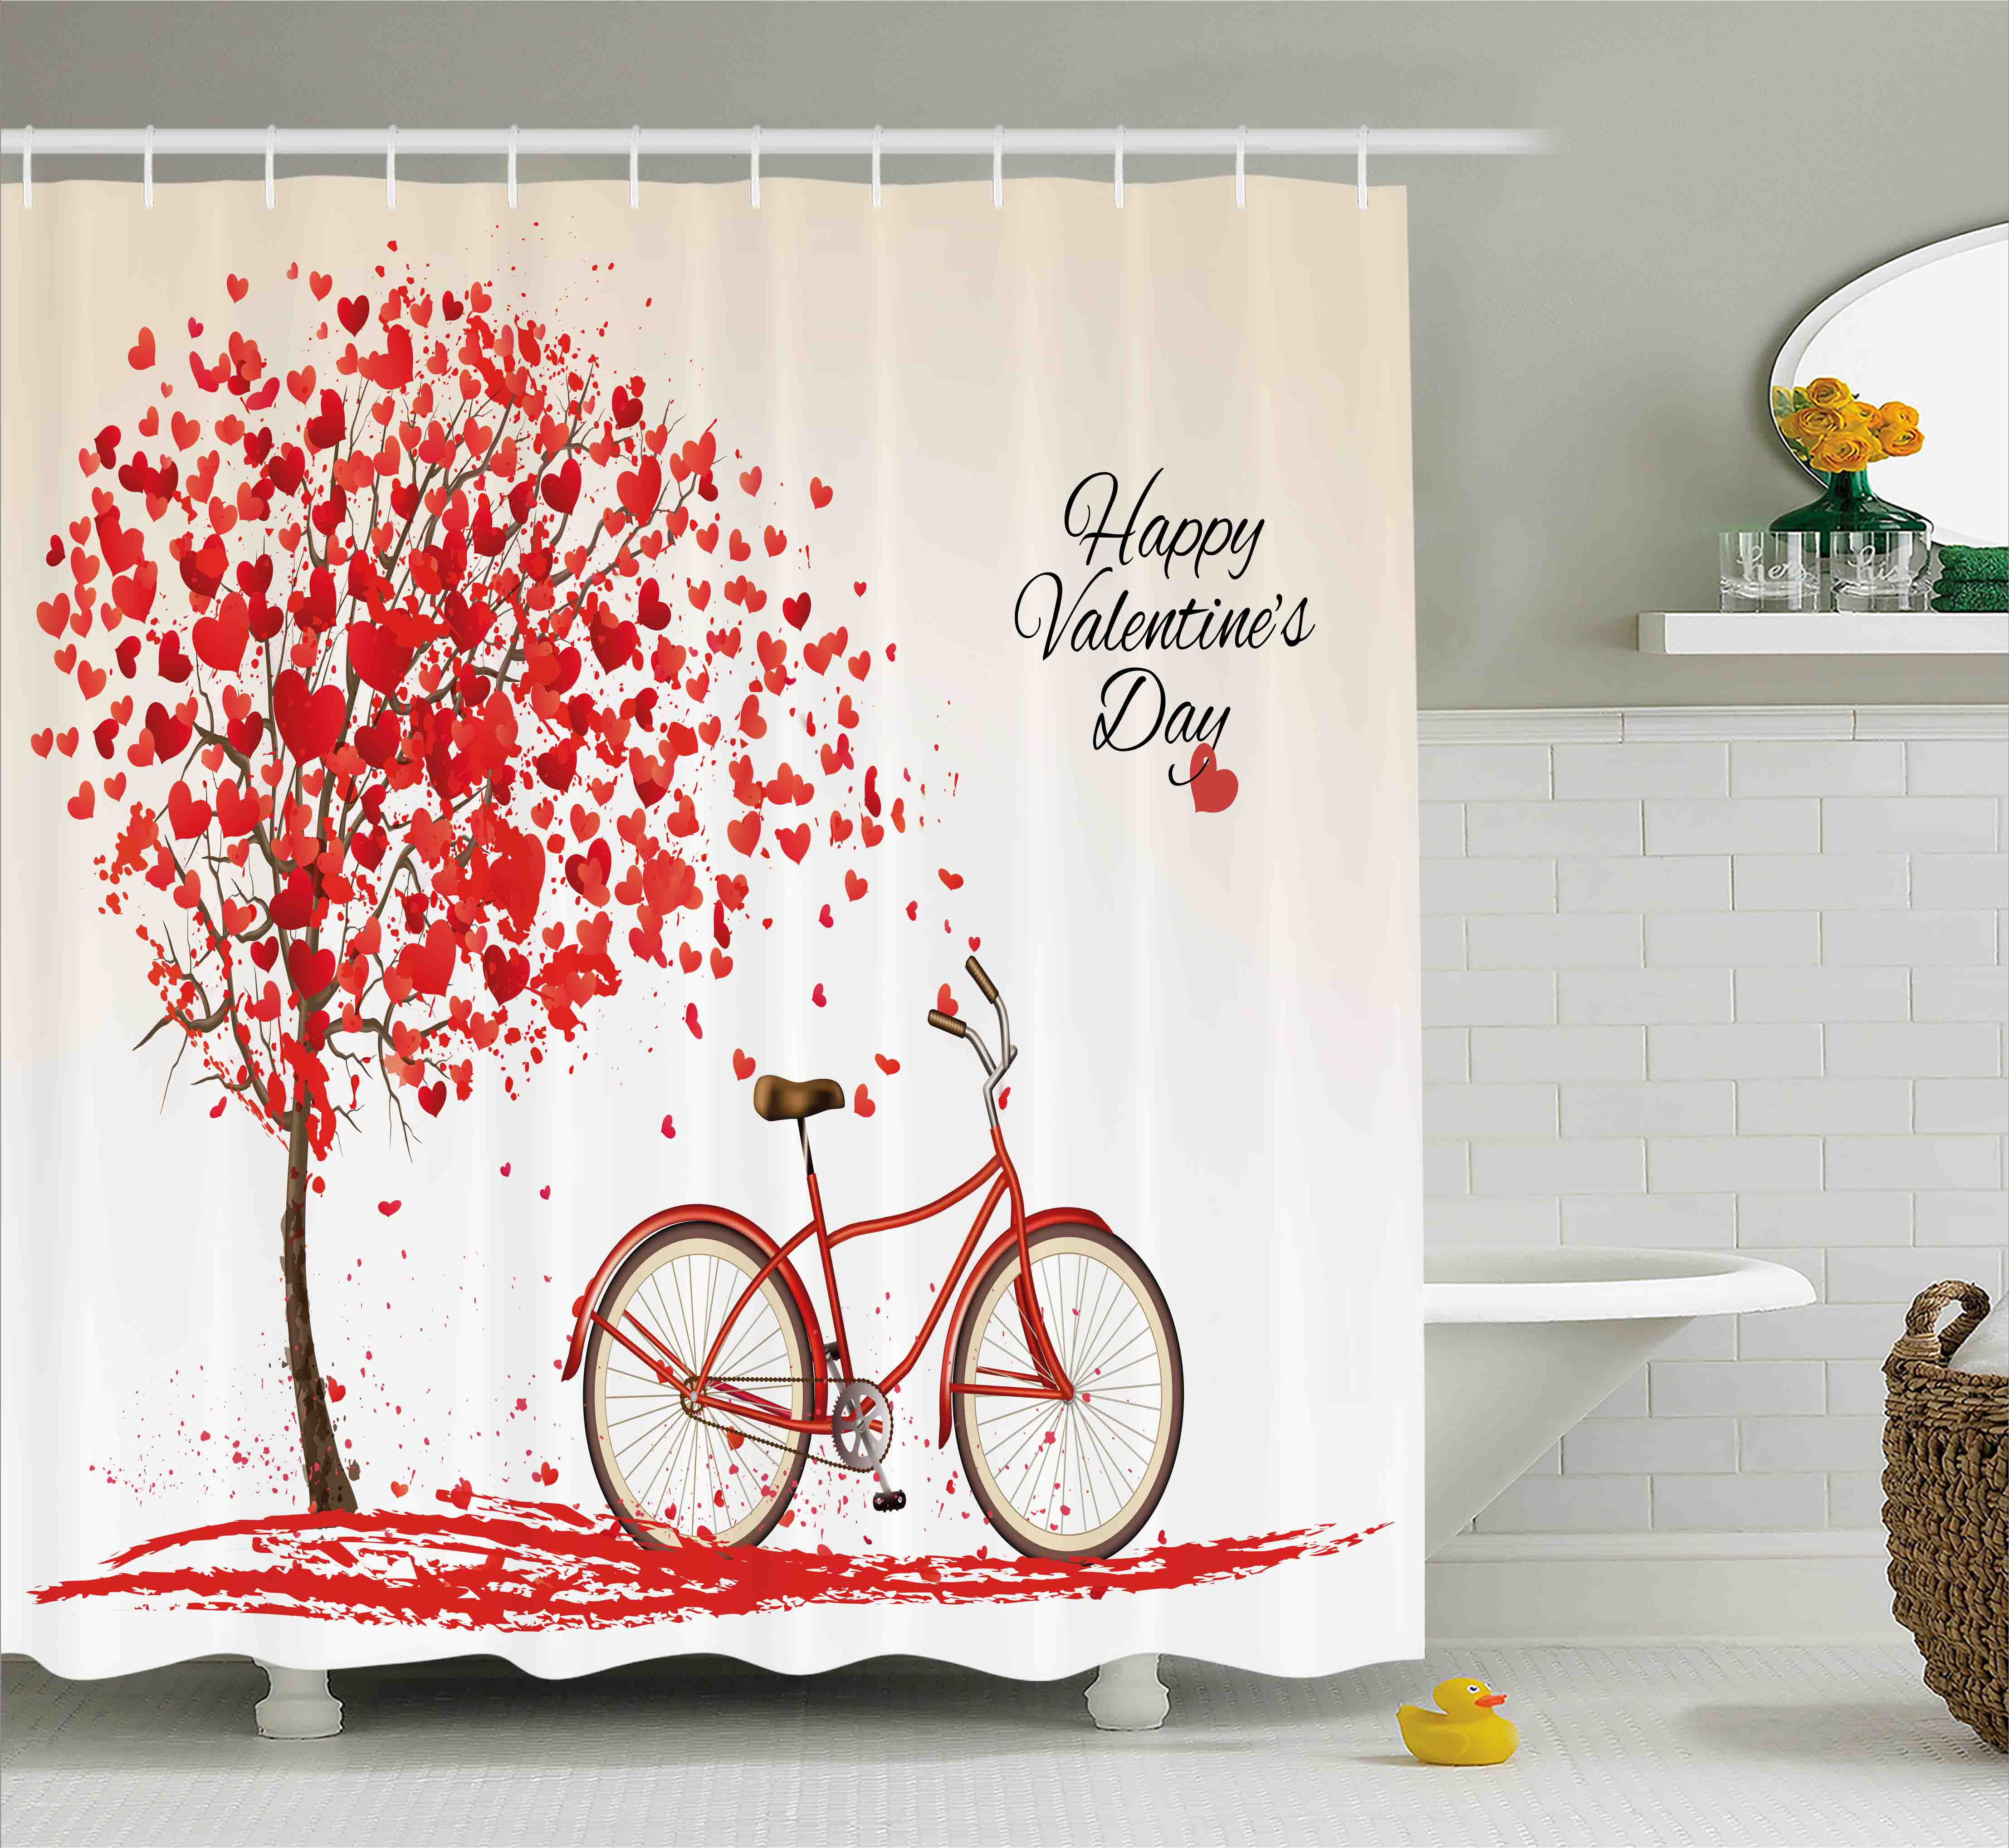 Valentines Day Shower Curtain, Romantic Tree made of Blooming Red Hearts with Bike and Petals Vintage Art, Fabric Bathroom Set with Hooks, 69W X 75L Inches Long, Pink Red, by Ambesonne